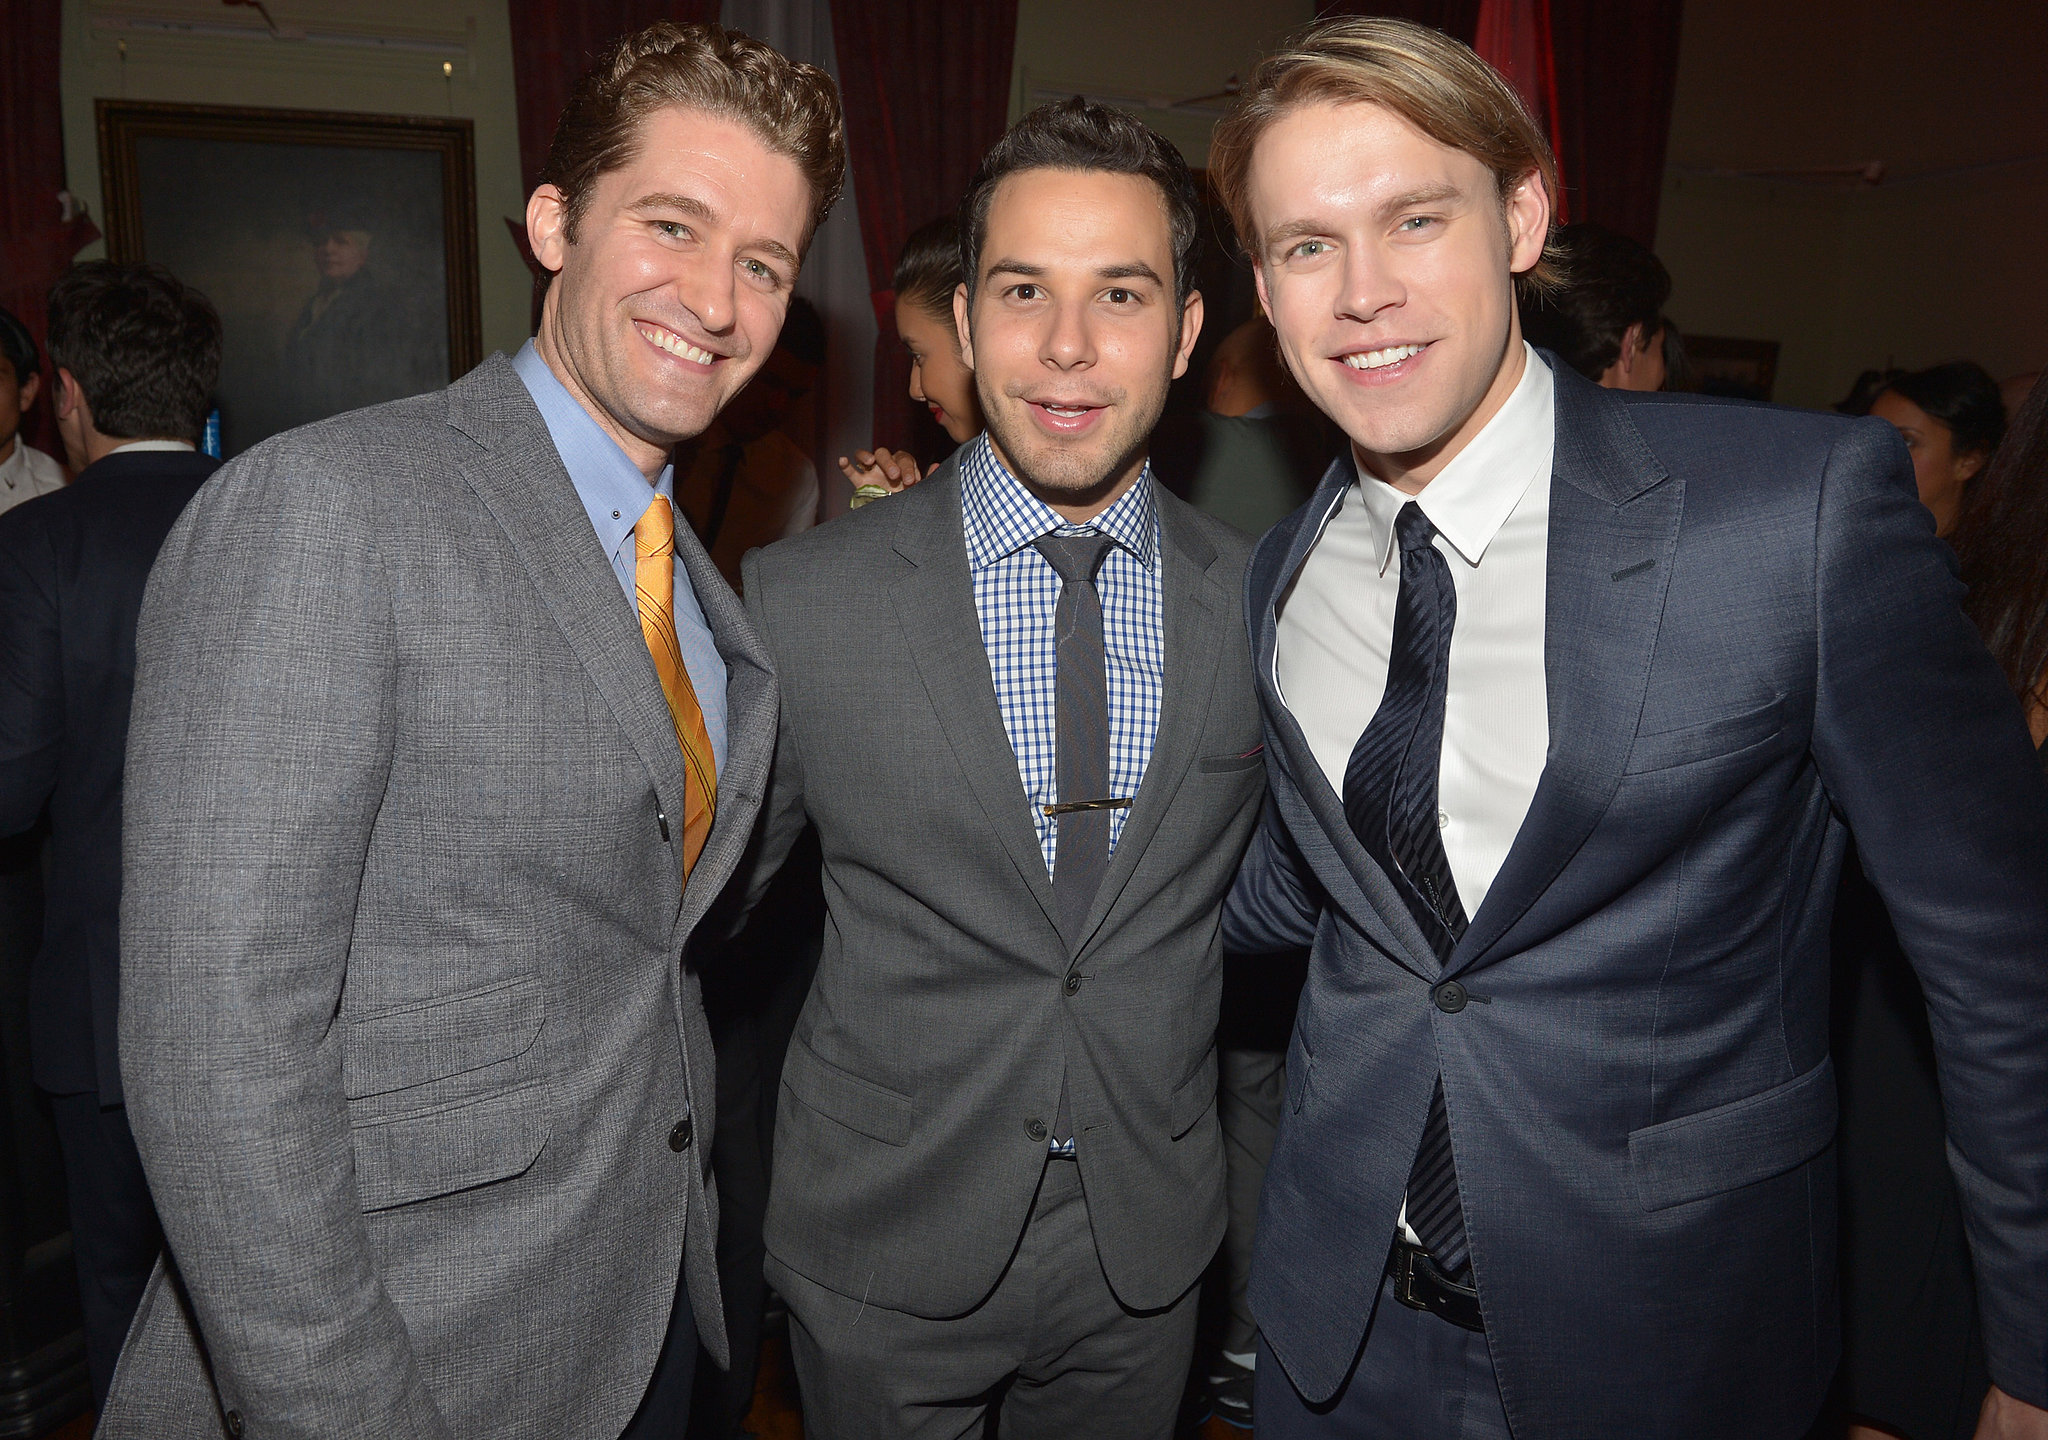 Glee stars Matthew Morrison and Chord Overstreet posed inside the party with Skylar Astin.